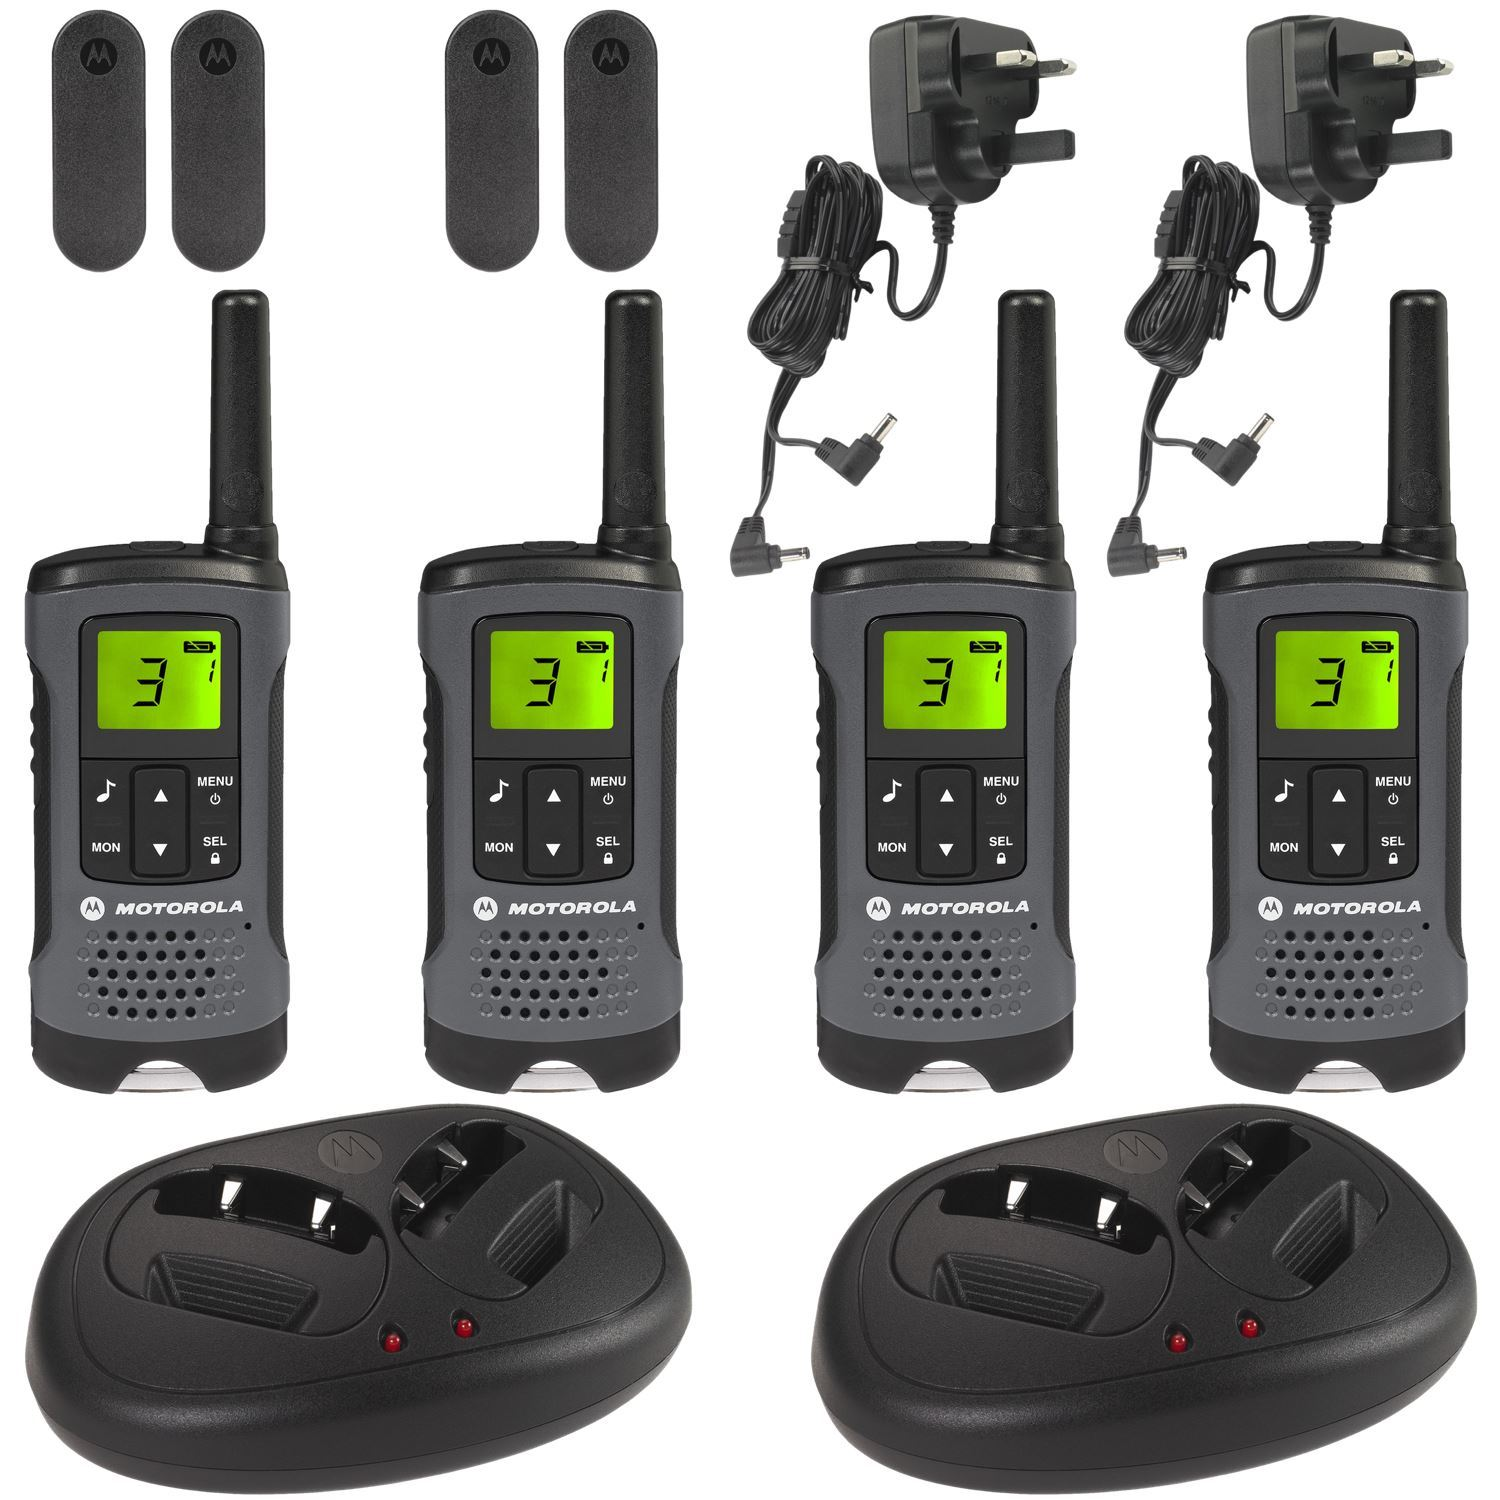 4 motorola tlkr t60z walkie talkie pmr446 rechargeable radio quad pack charger. Black Bedroom Furniture Sets. Home Design Ideas